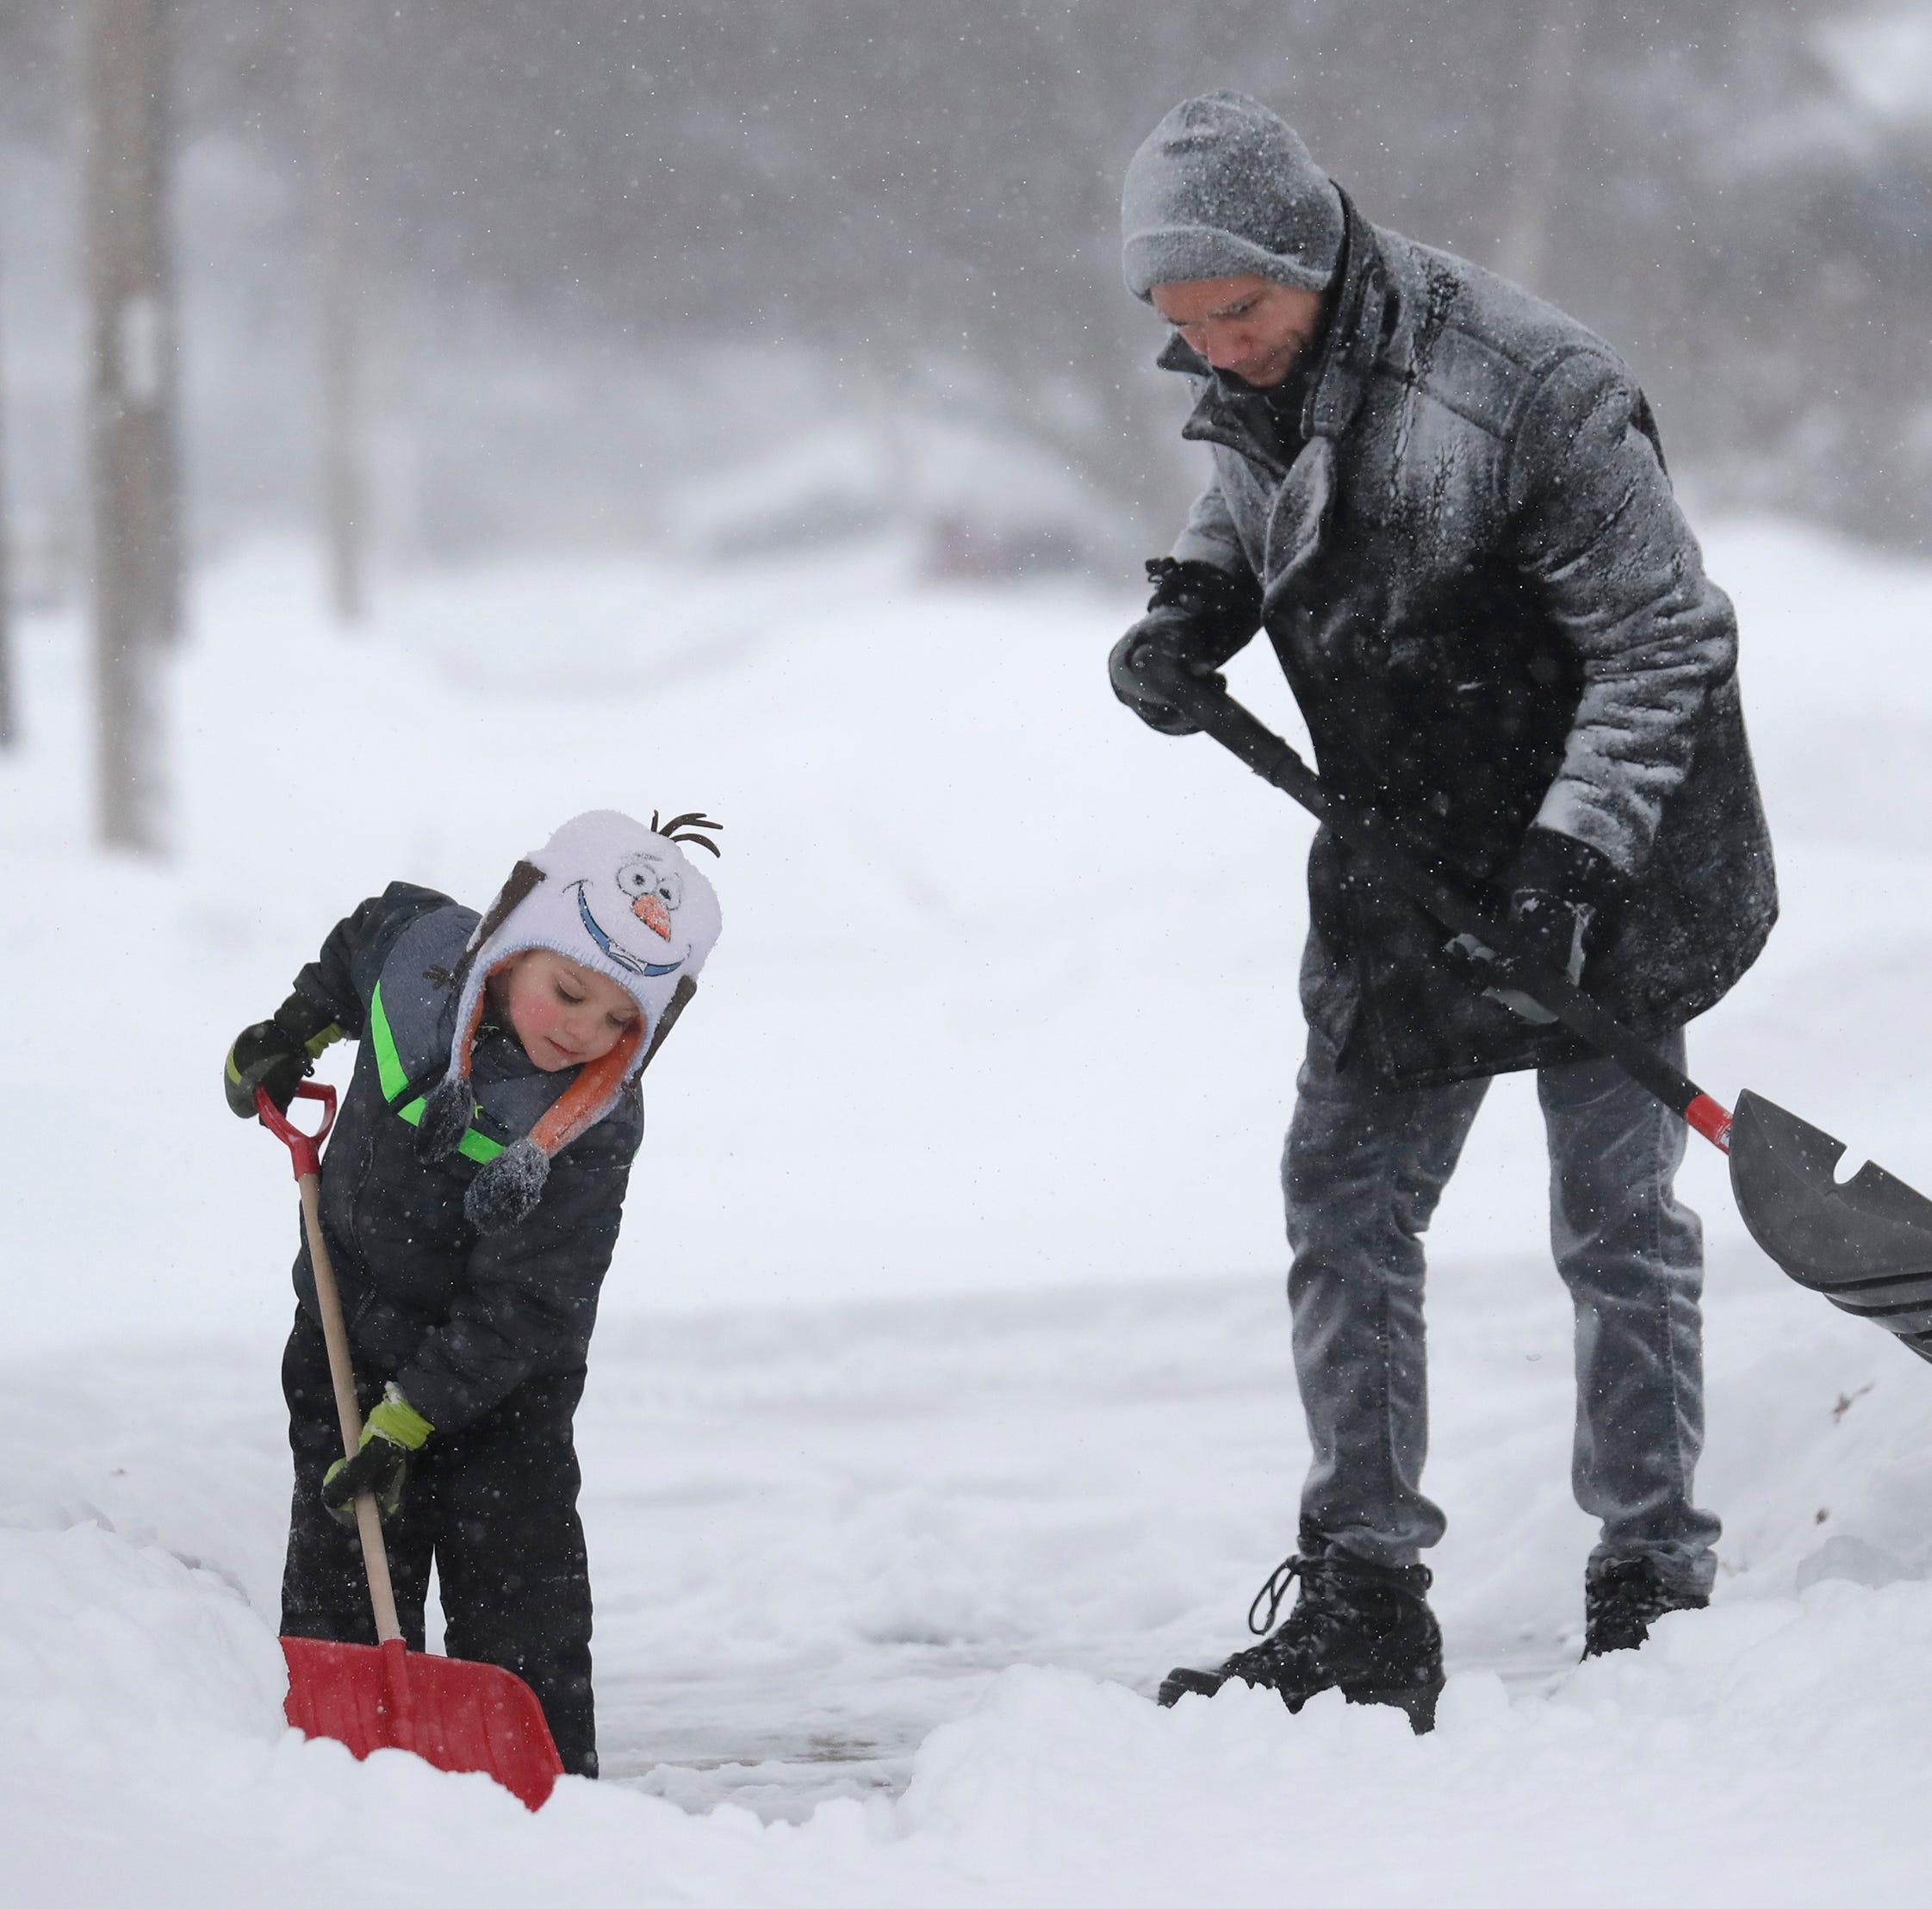 'No exceptions': Appleton requires removal of snow from sidewalks within 36 hours